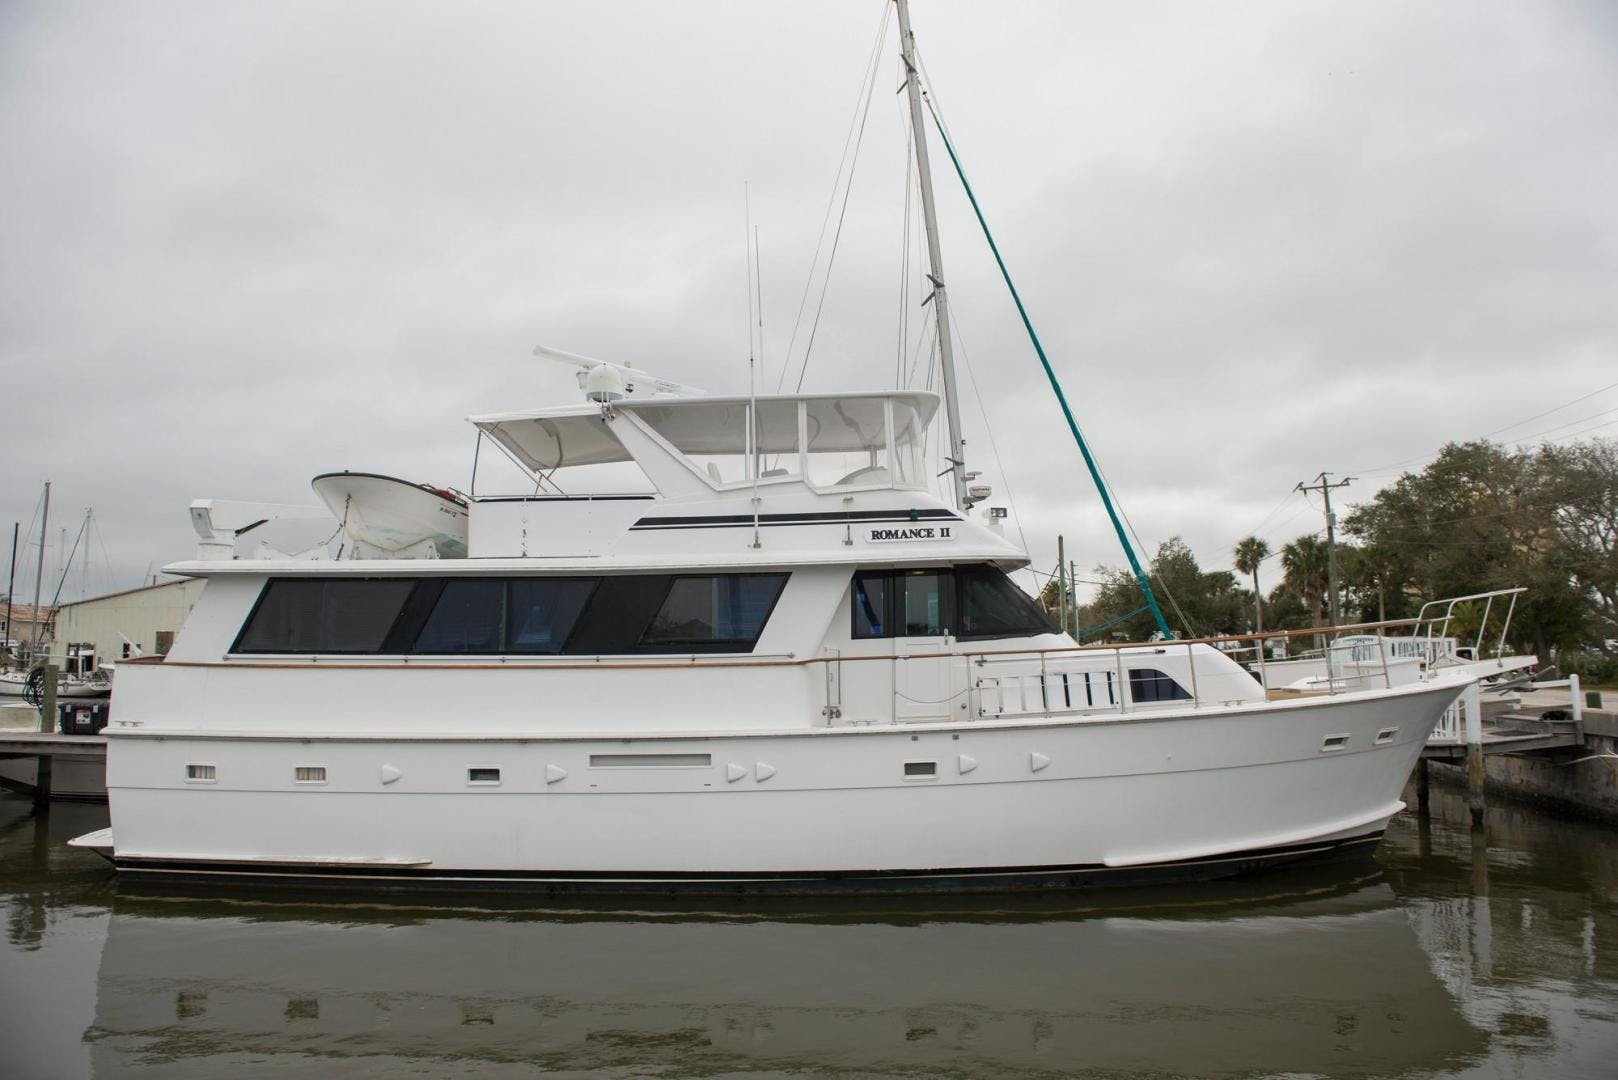 1981 Hatteras 61'  Romance II     Picture 5 of 61